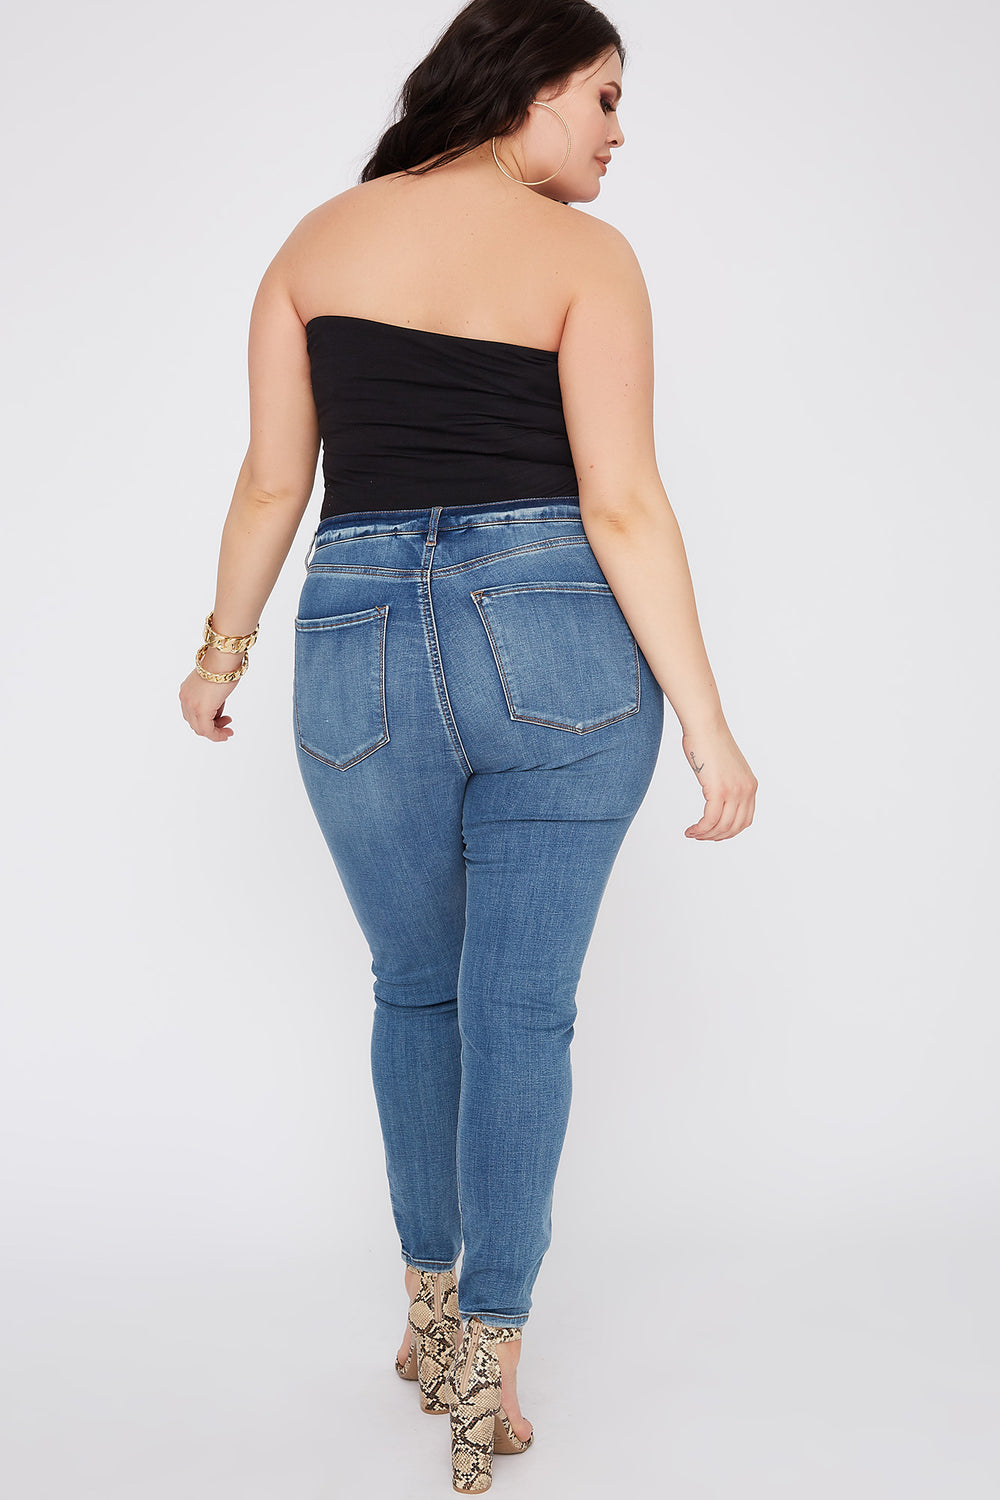 Refuge Plus Size High-Rise Medium Blue Jegging Medium Blue